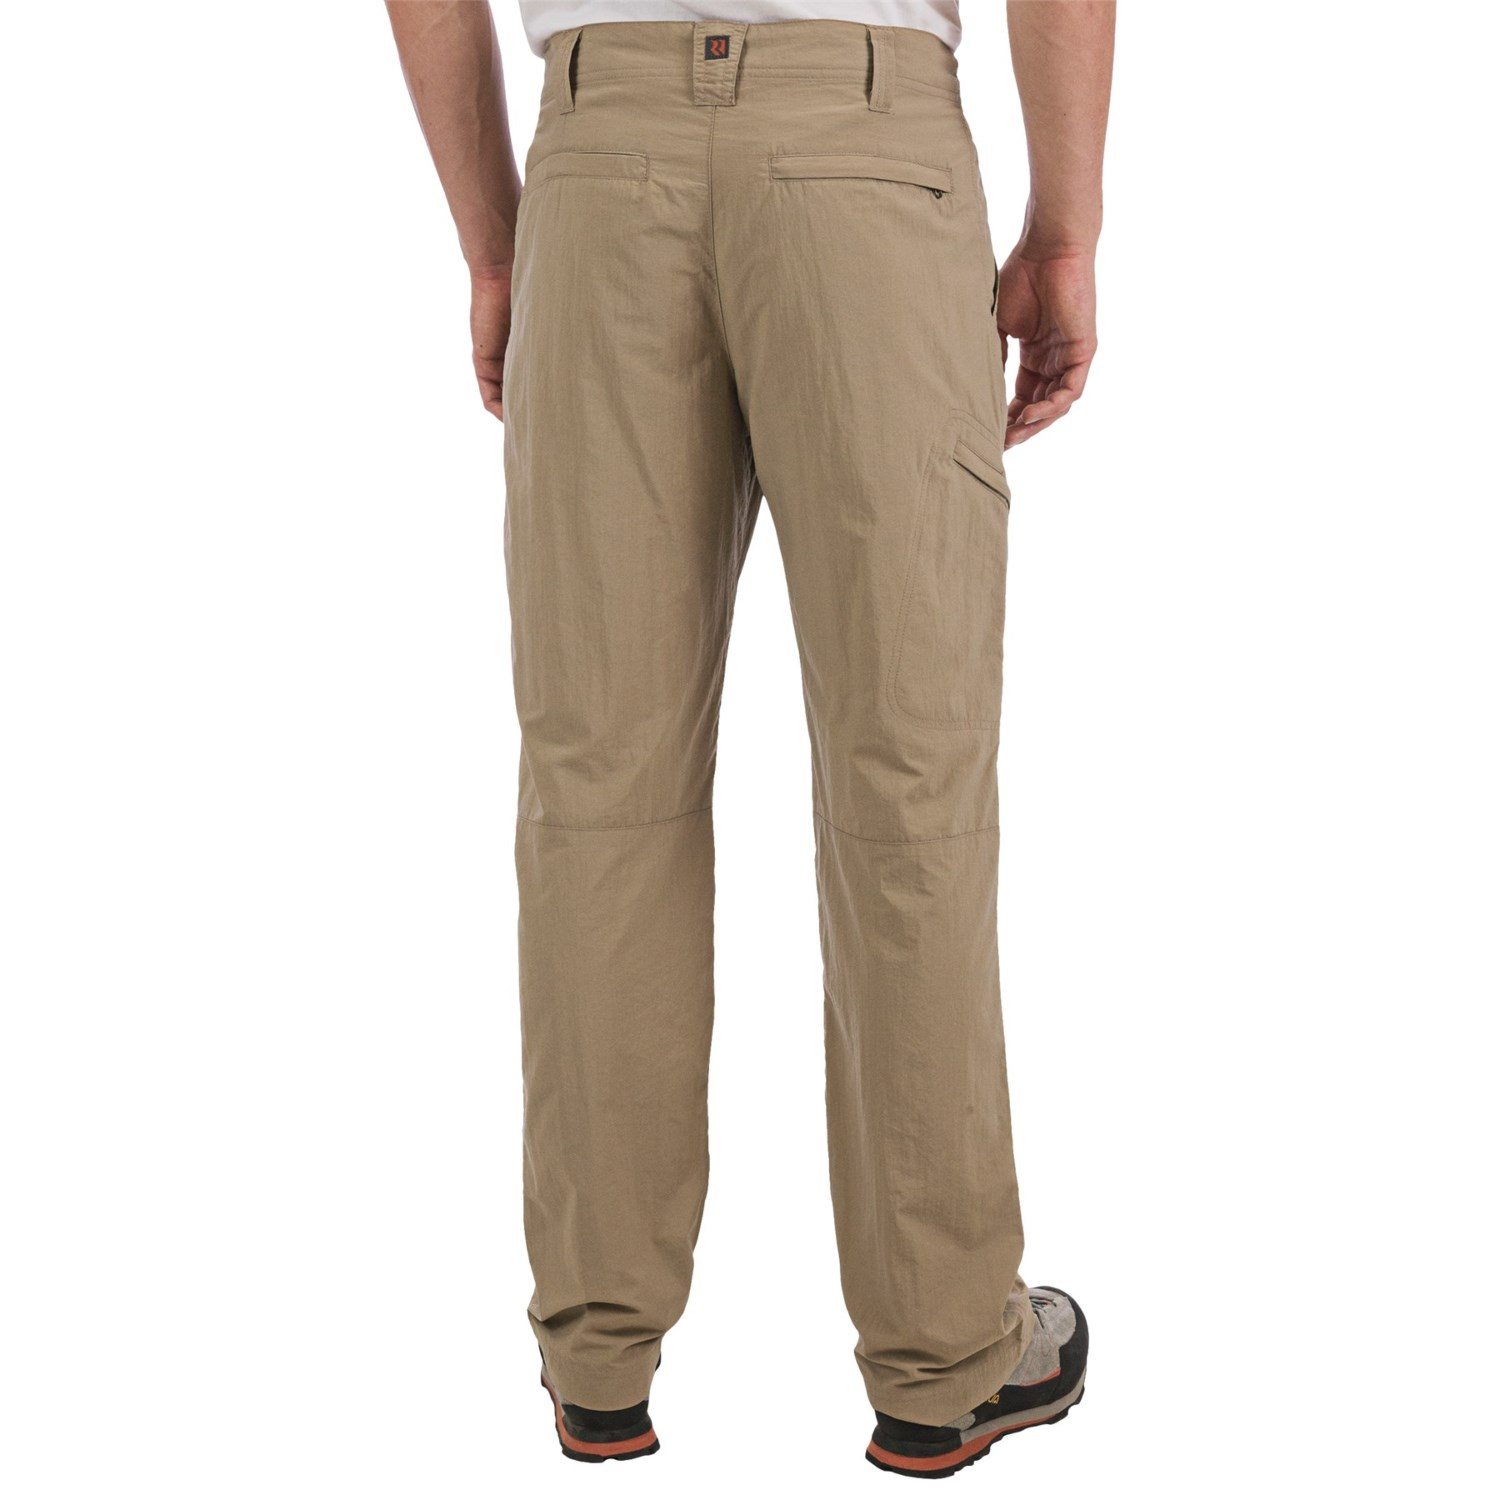 """LULULEMON Men's ABC Pants 36"""" x 32"""" Inseam, Gray I wore this pants, quite a bit, although in good solid condition, I give 8 out of Send them back if not happy. See picture of tape for inseam Length."""